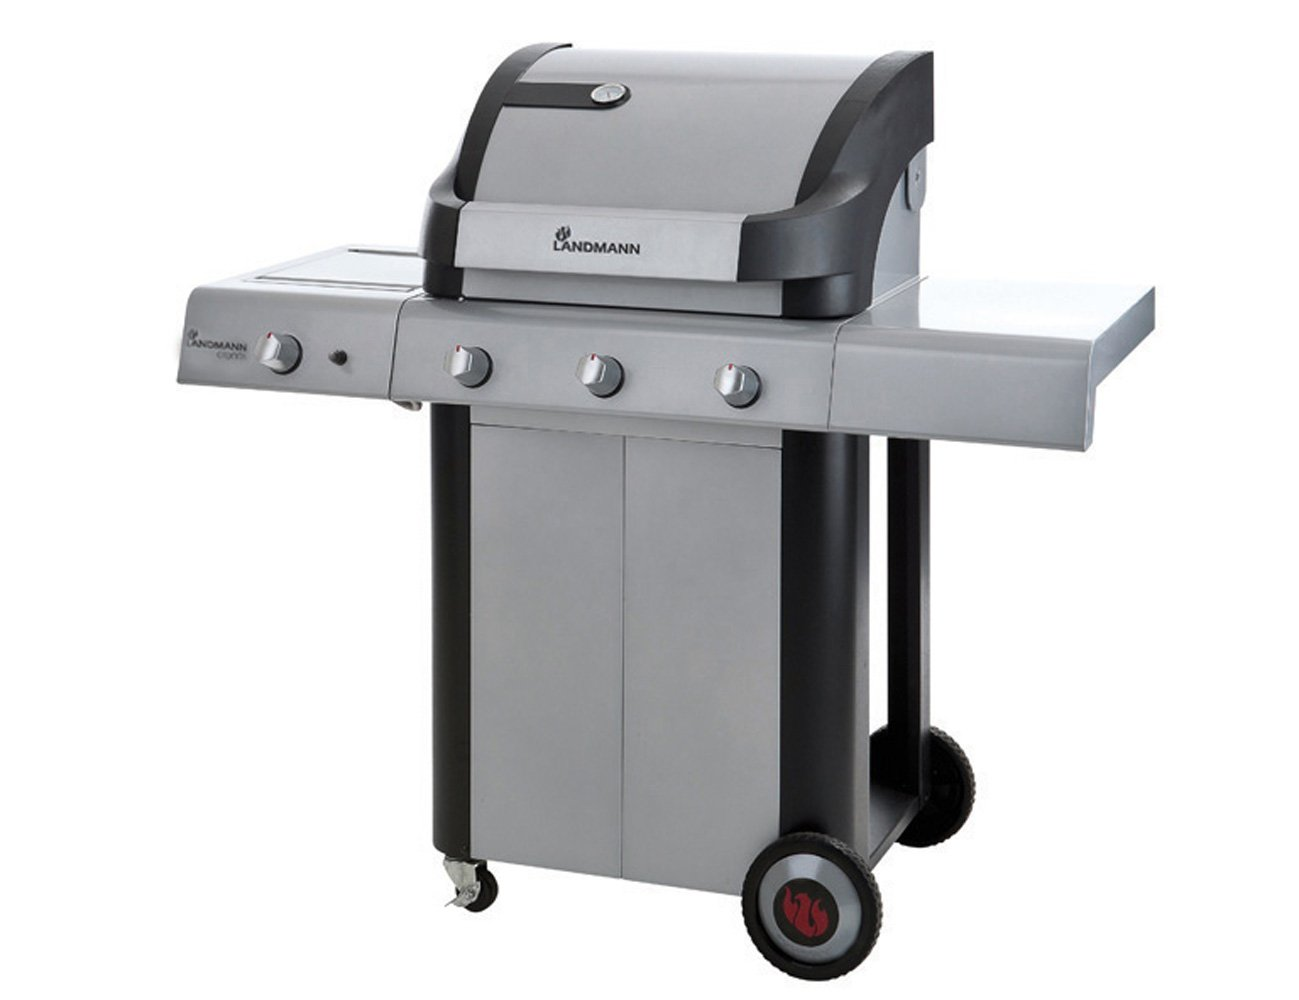 Tepro Gasgrill Denver Test : Toom gasgrill good broil king broil king gasgrill with toom